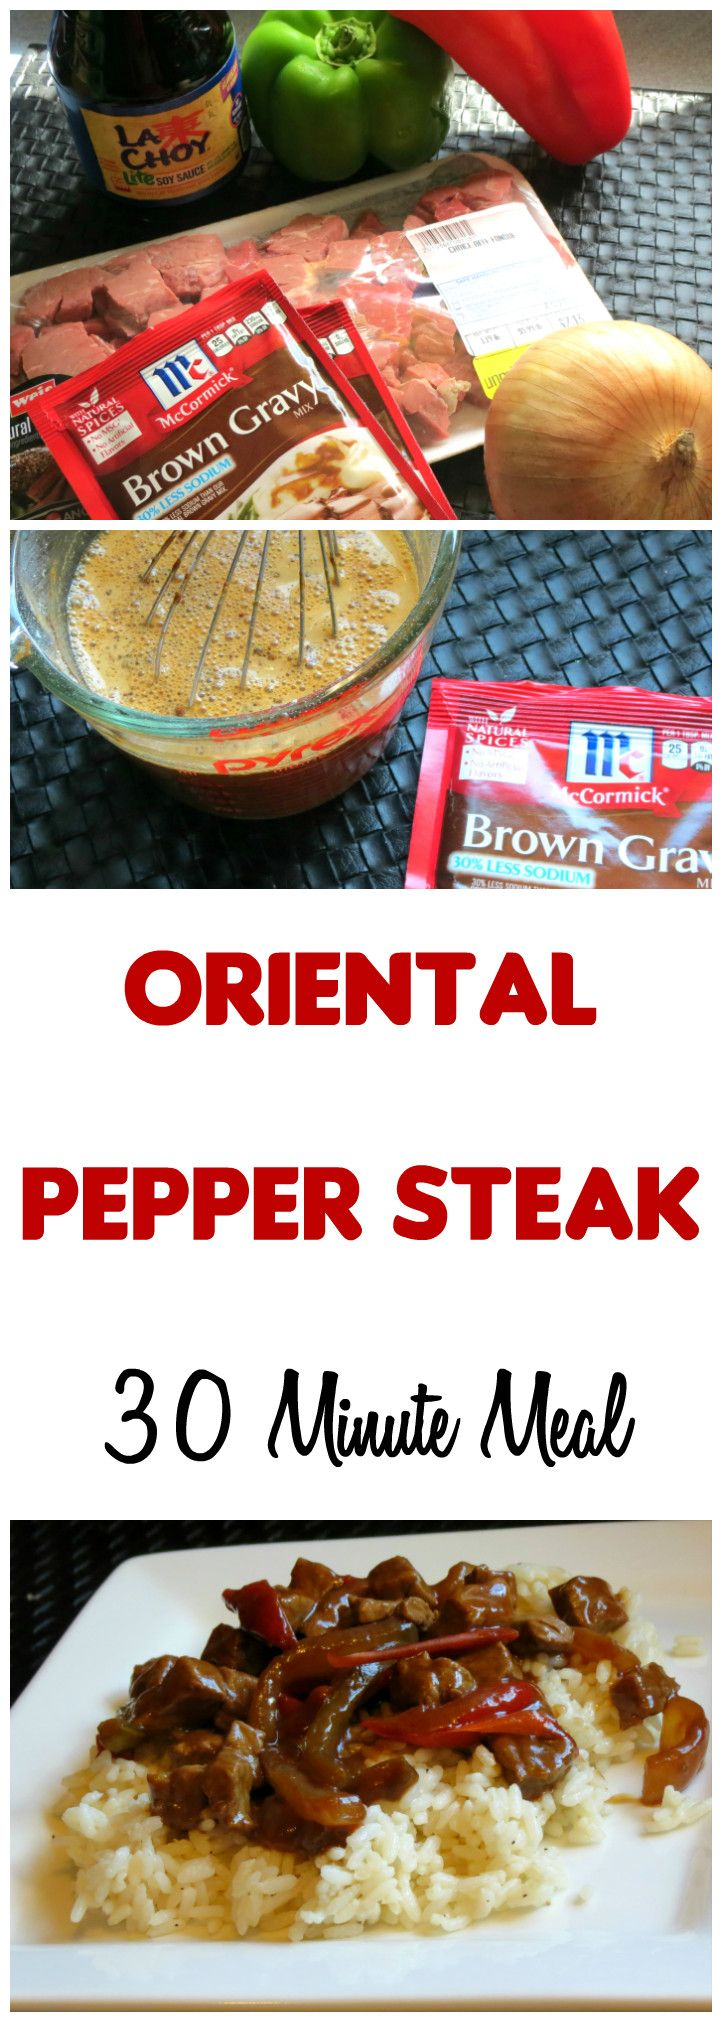 Pepper Steak | A 30 Minute Meal: This quick meal is a family favorite! My kiddos happily eat every last onion and pepper because of the amazing flavor.